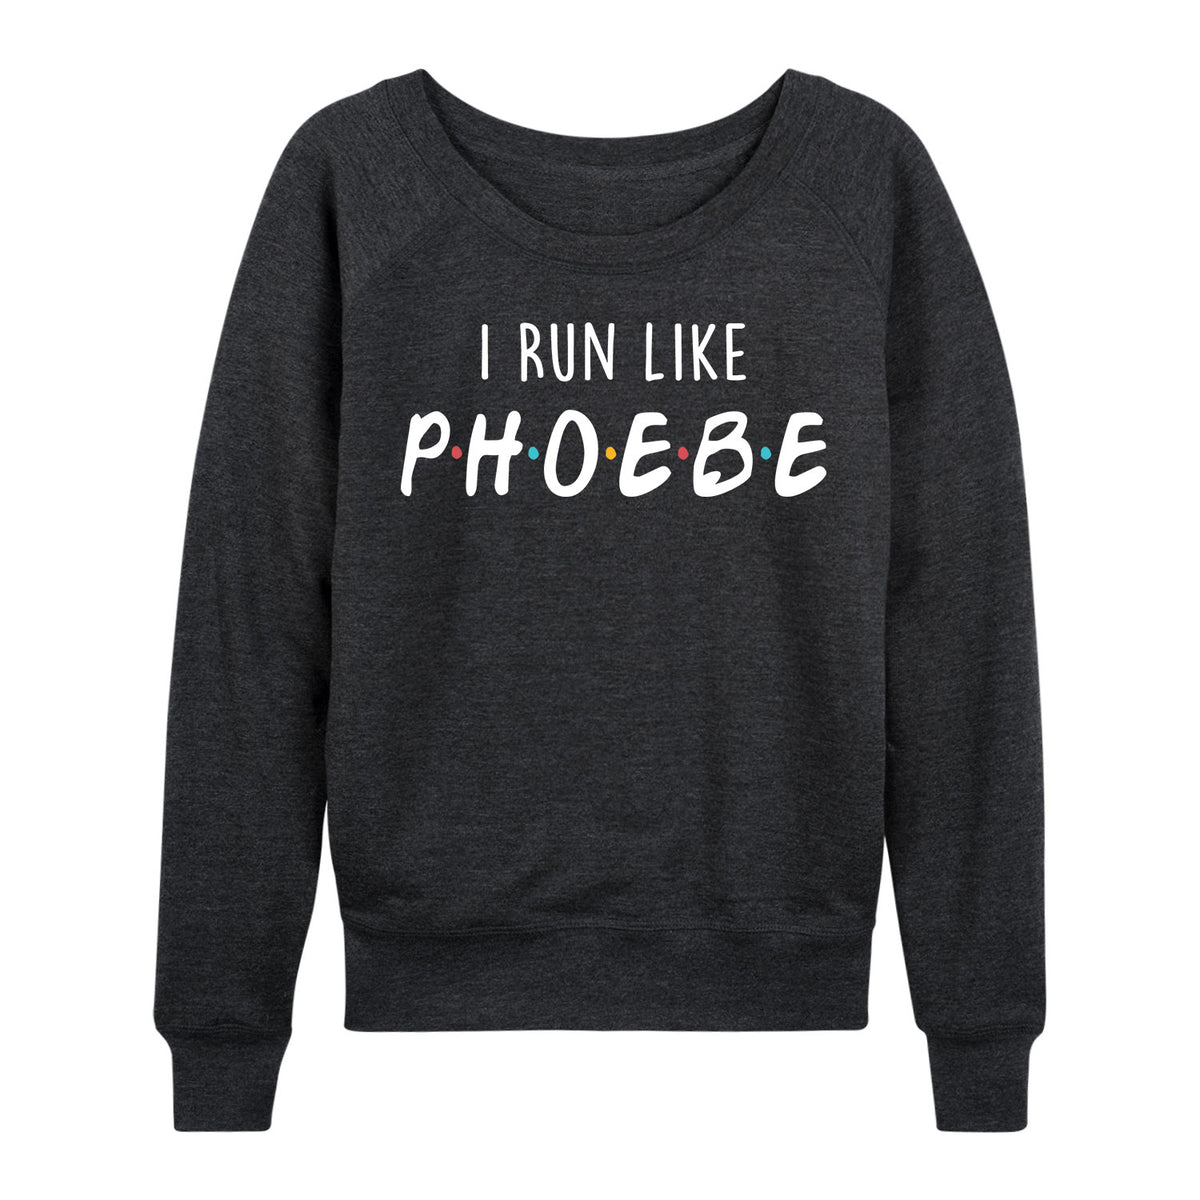 I Run Like Phoebe - Women's Slouchy